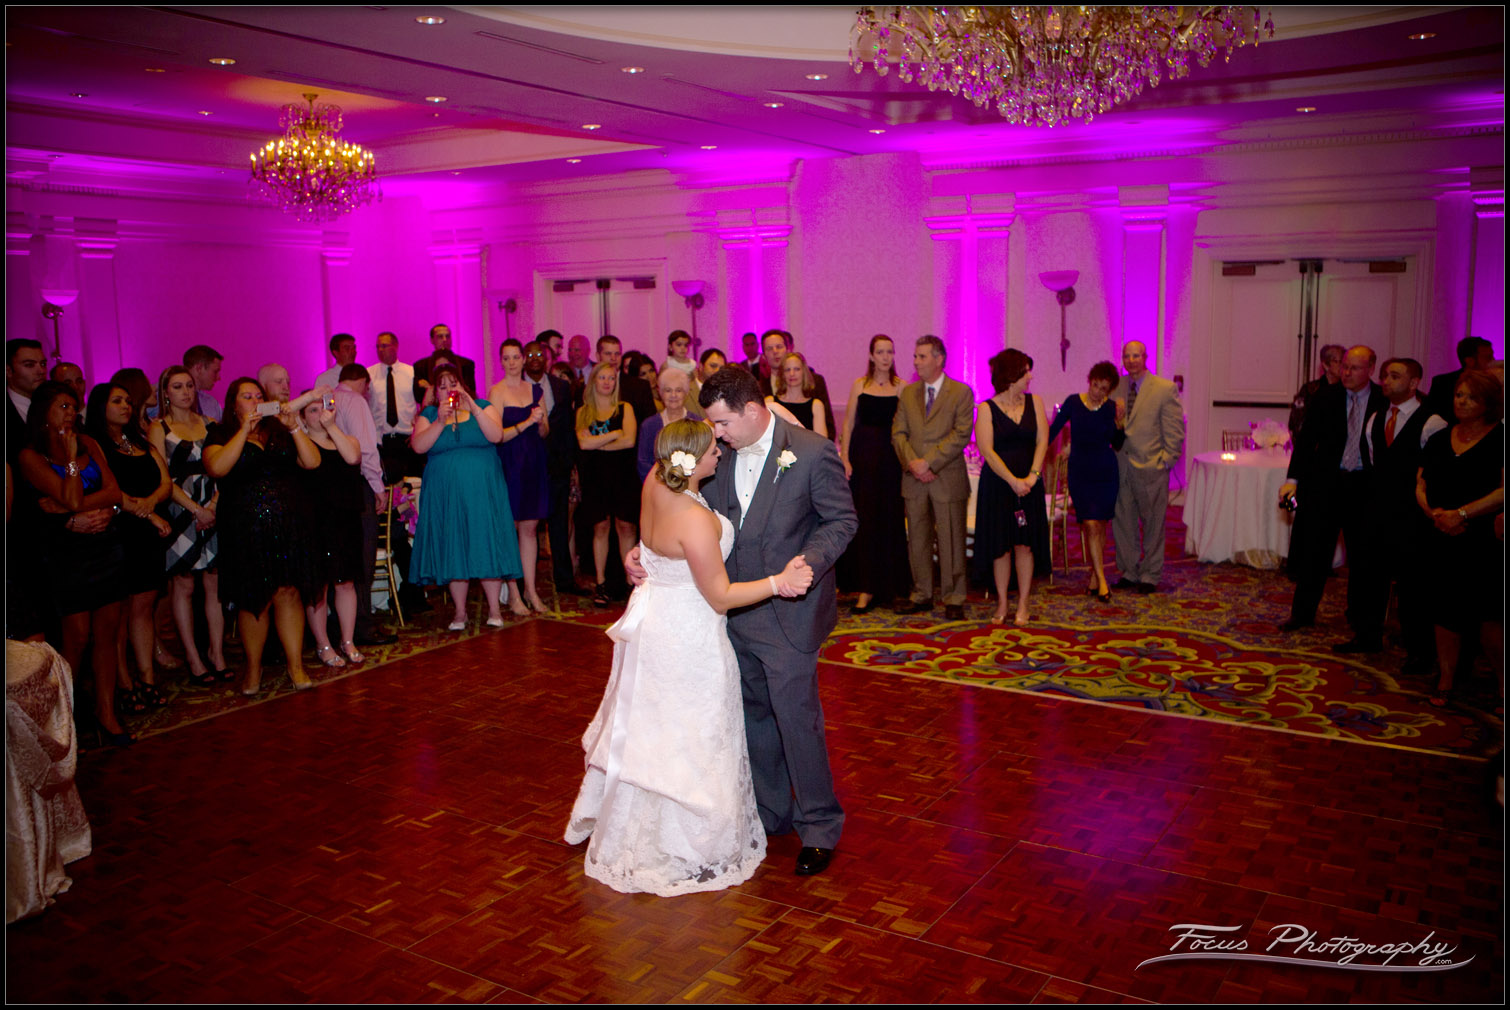 Bride and Groom Dancing in the Wentworth Ballroom